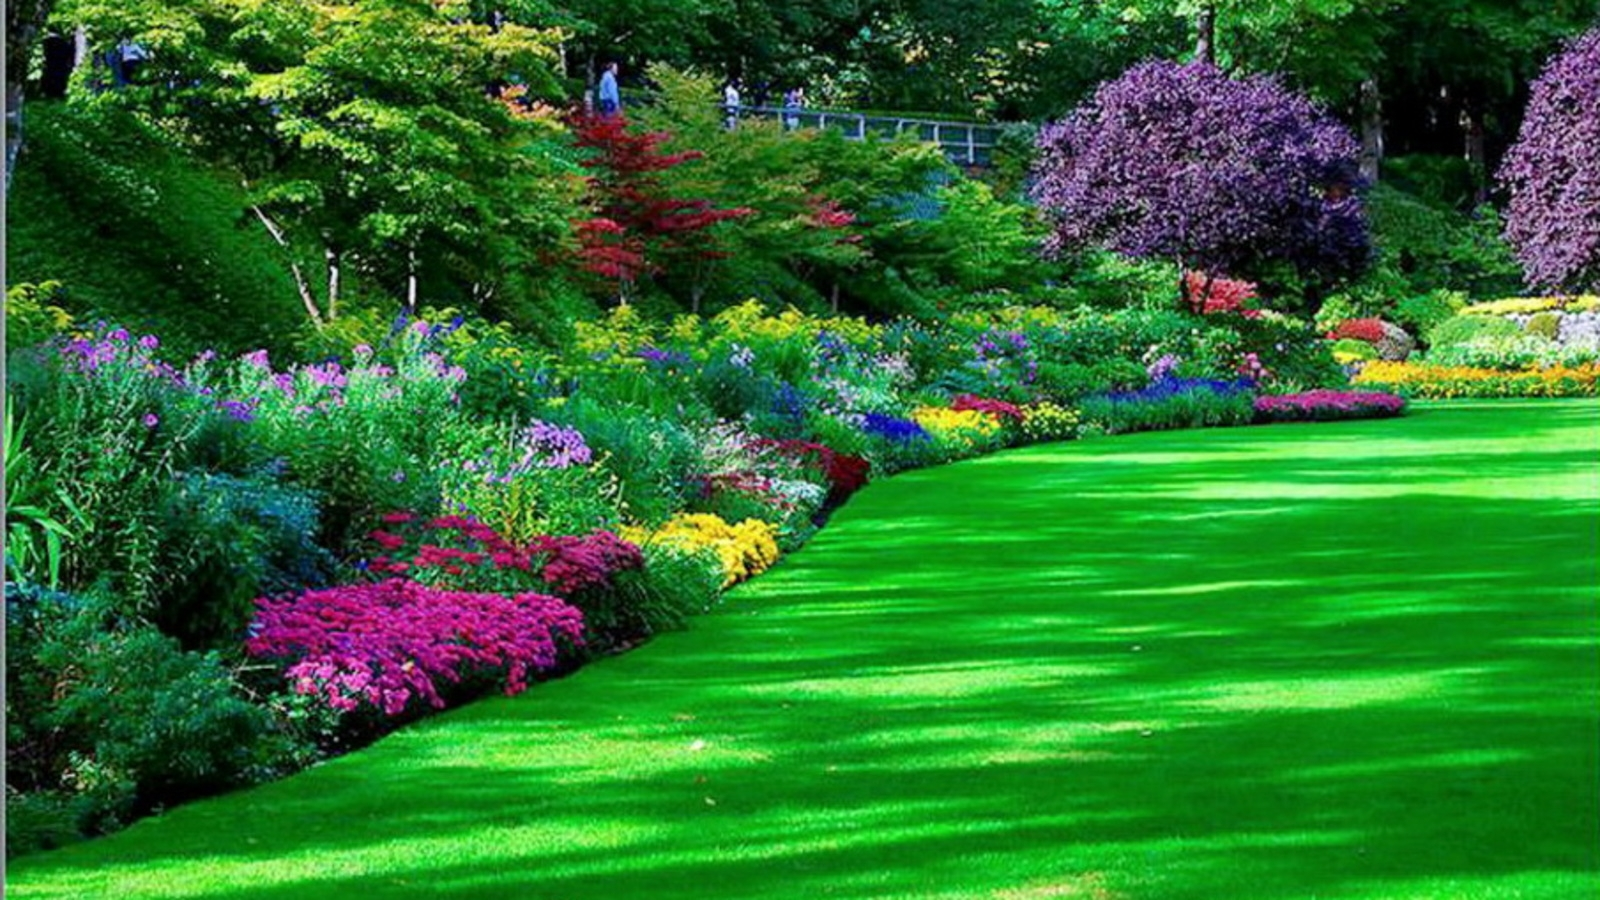 263 garden hd wallpapers | background images - wallpaper abyss